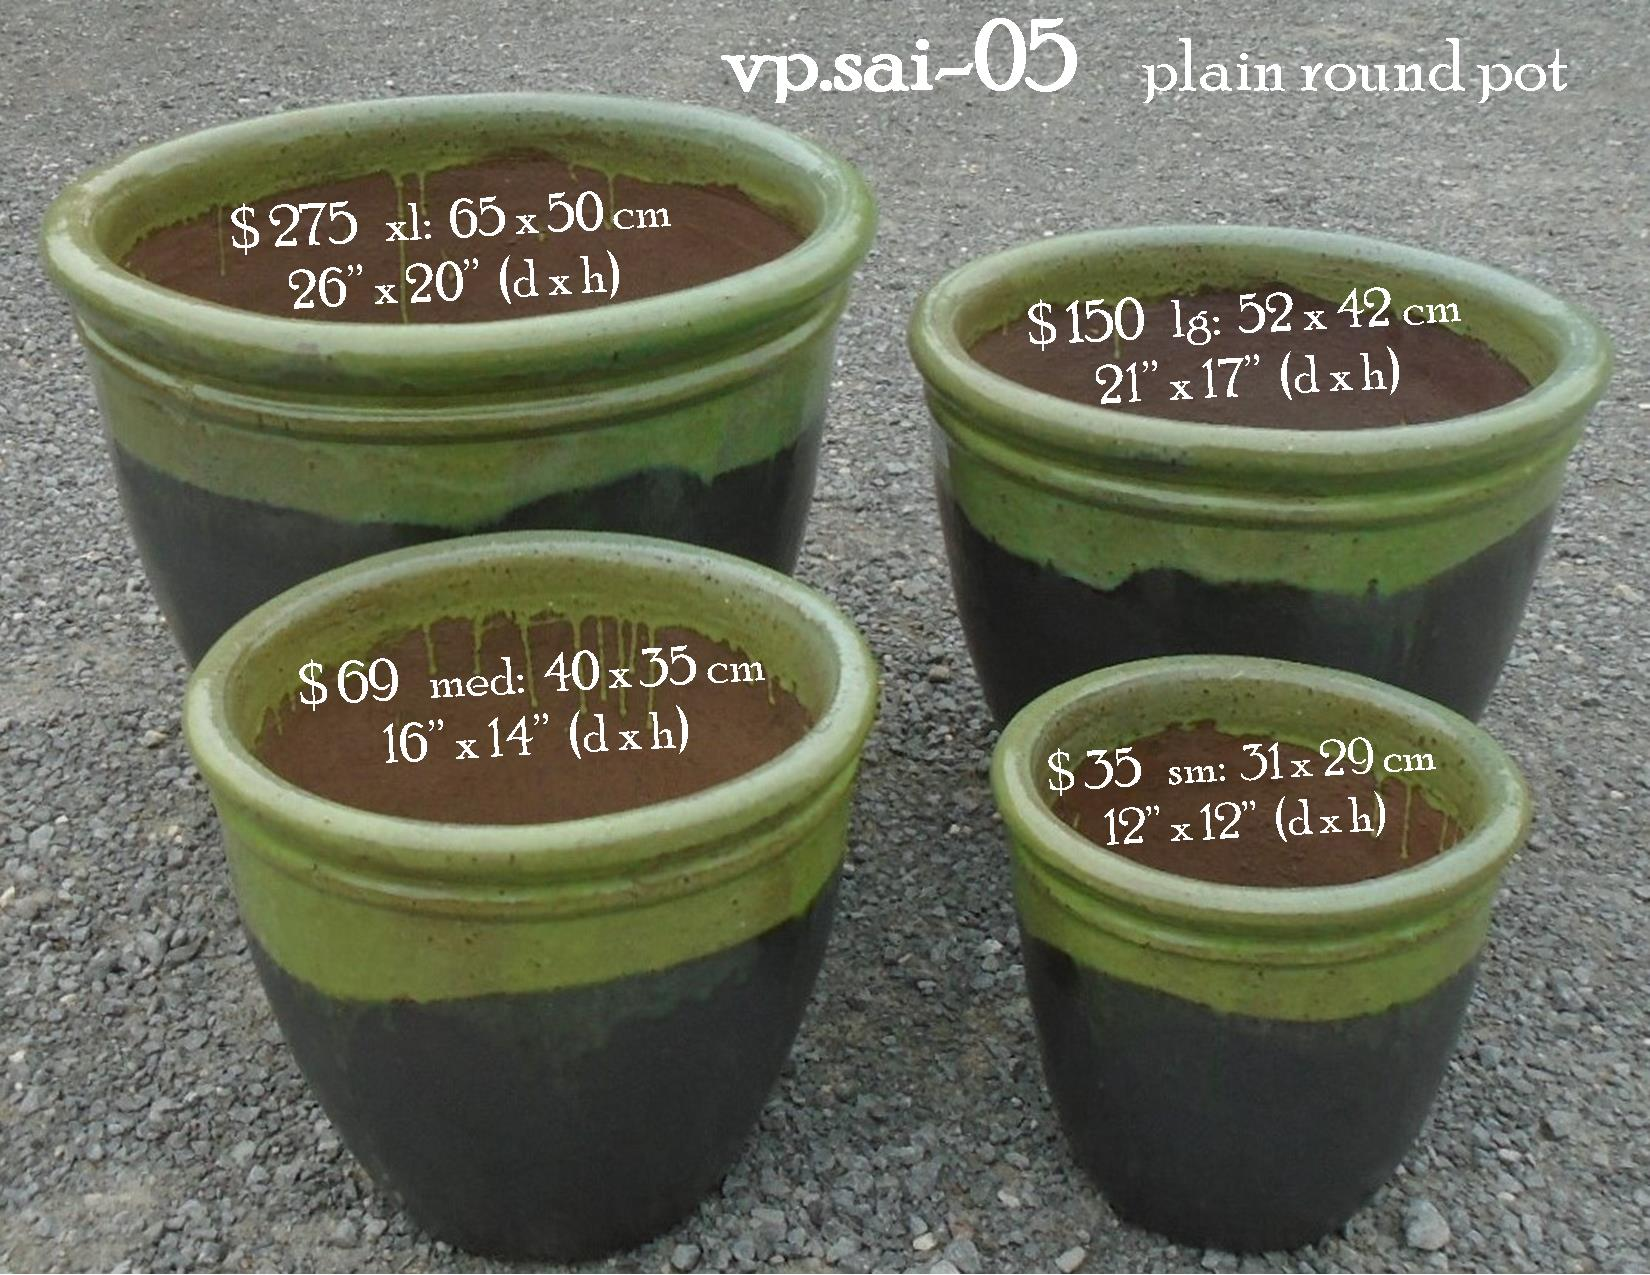 vp.sai-05    green rim pot